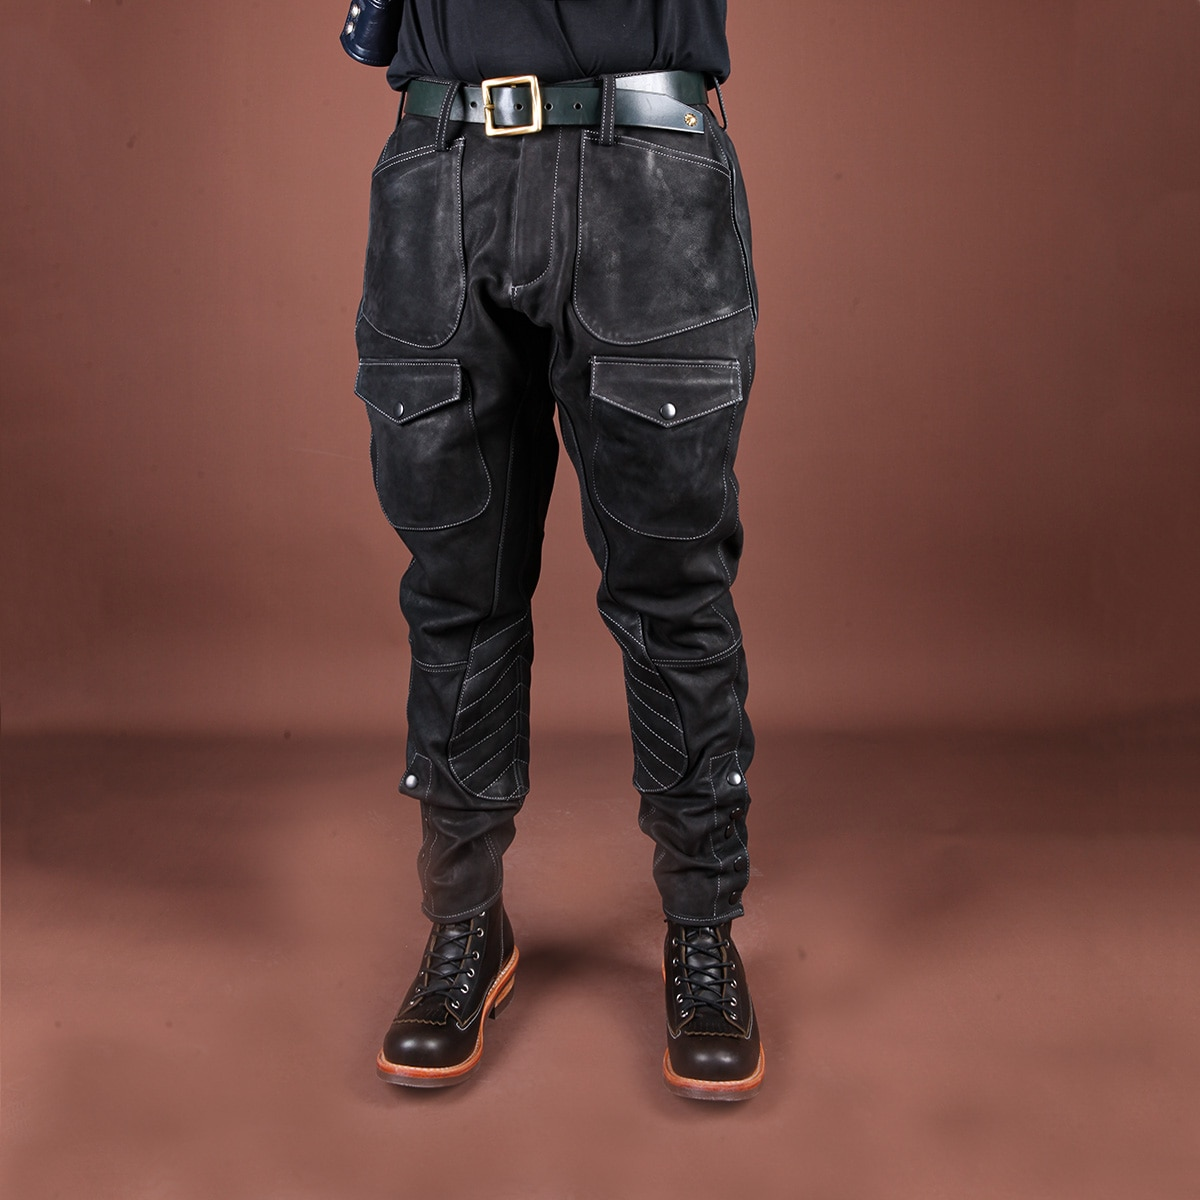 SDP731 RockCanRoll Genuine Cow Leather Motorcycle Rider Pants Vintage Heavy Thick Durable Stylish Cowhide Trousers